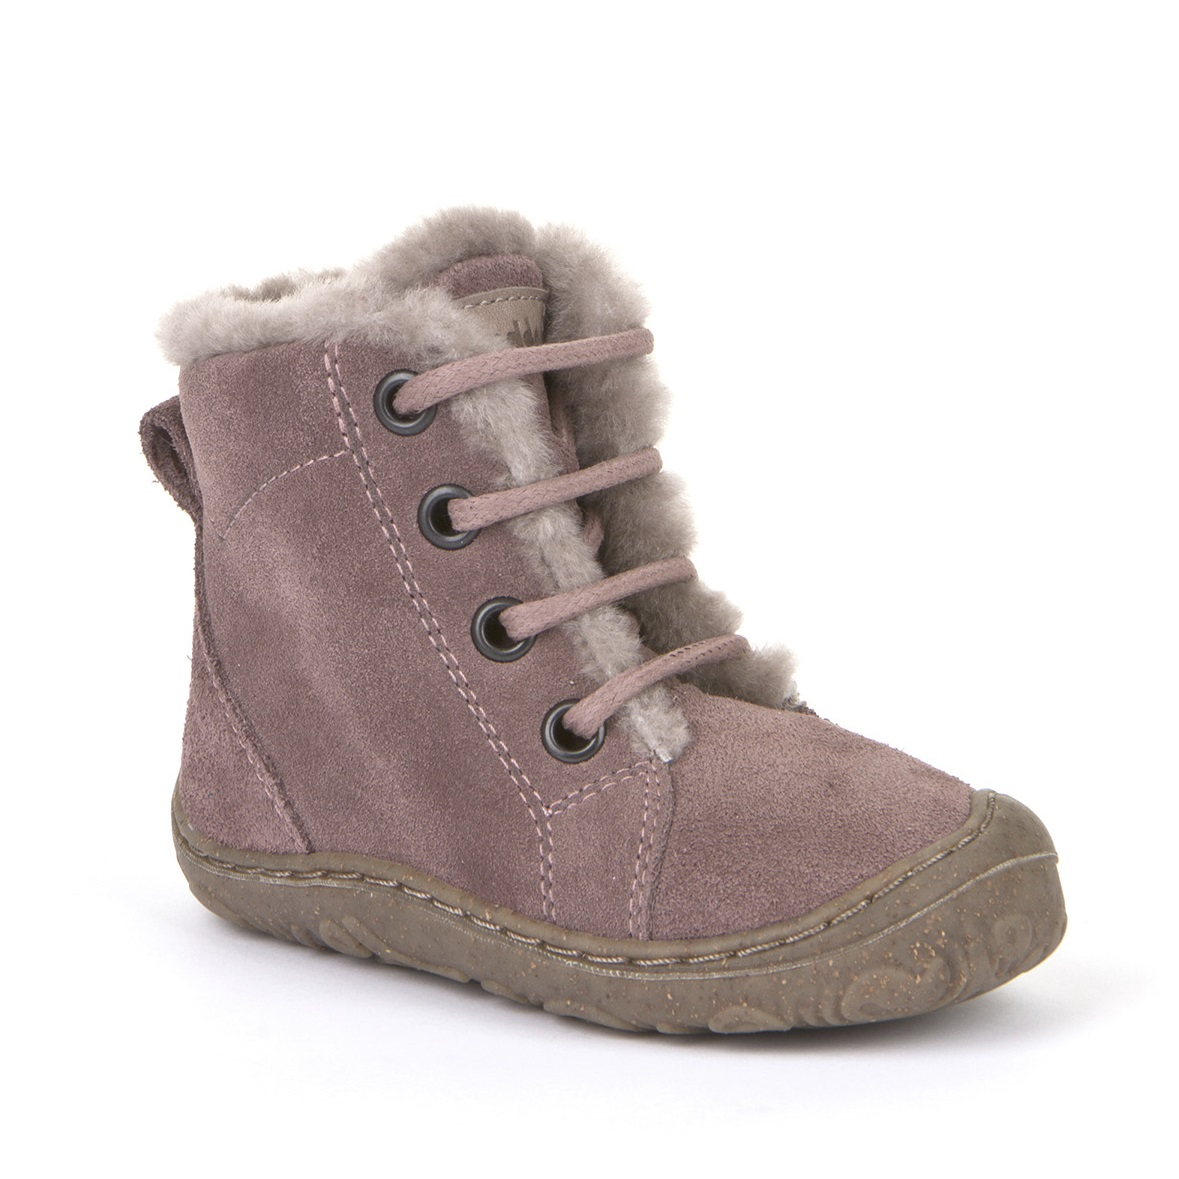 FRODDO Girls Boots Fur-lined Pink G2110091 NOW £34.95